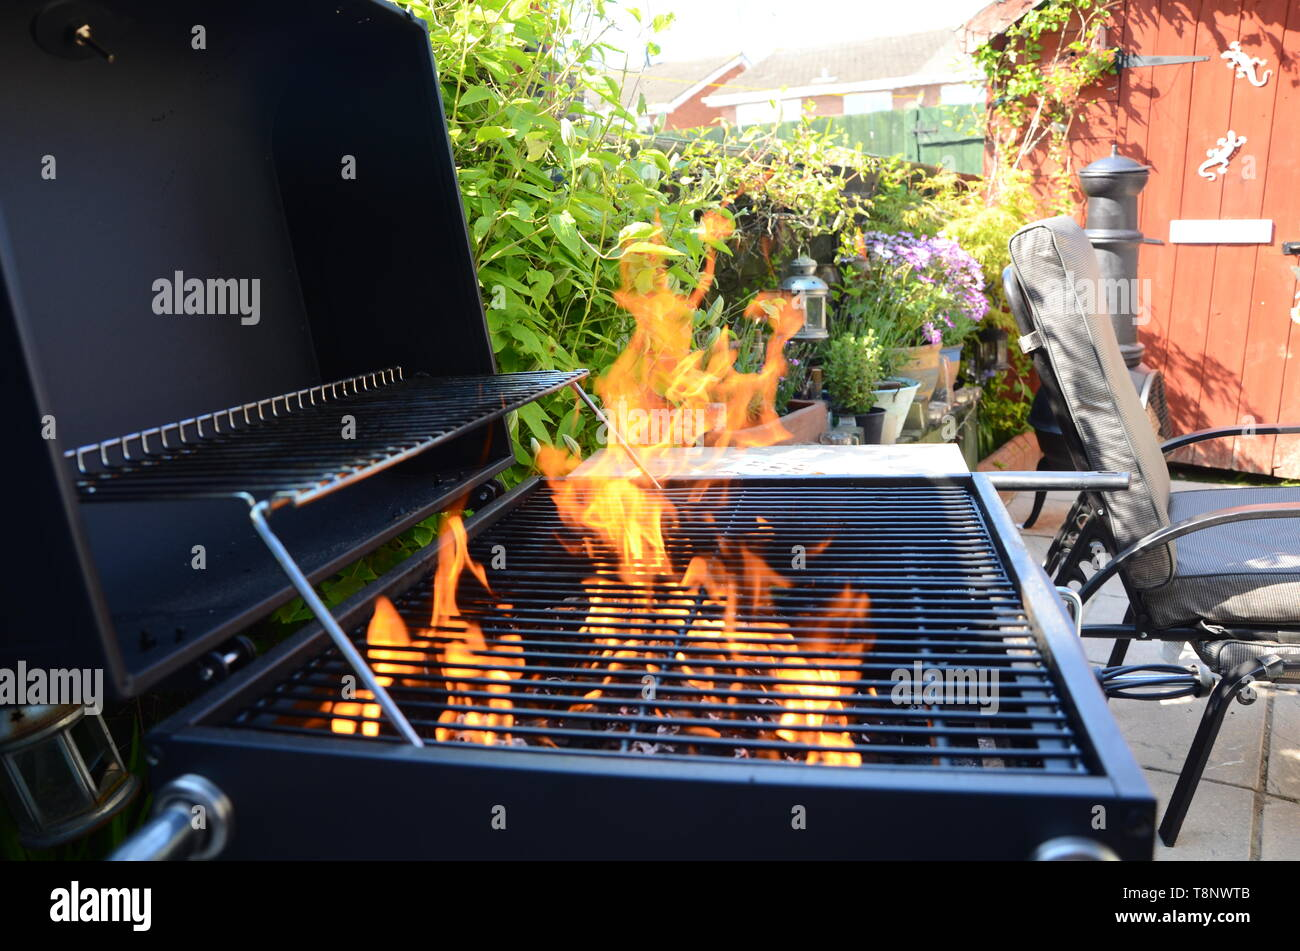 garden barbecue, lighter fuel, home fire safety - Stock Image